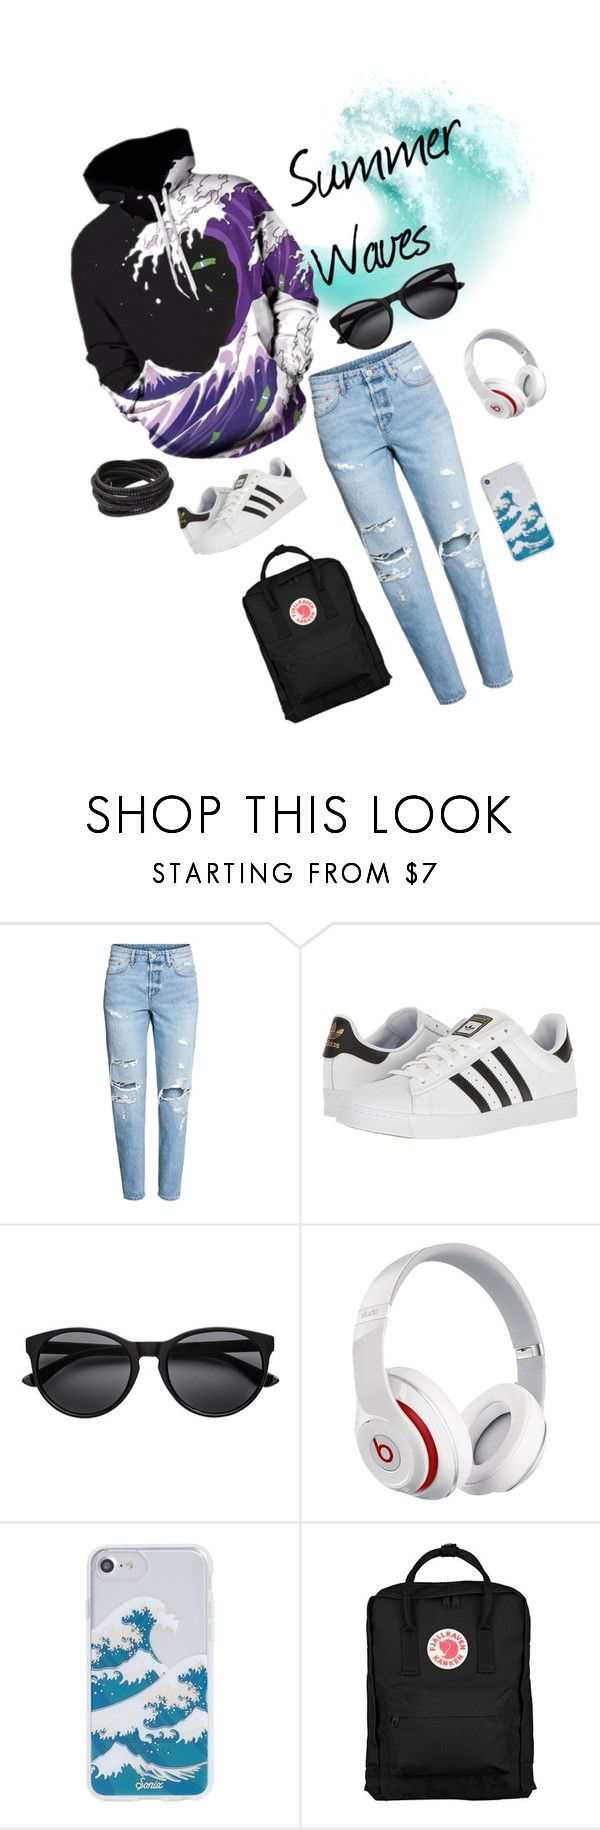 """Summer Waves"" by breezeshirt on Polyvore featuring H&M, adidas, Beats by Dr. Dre, Sonix, Fjällräven, Pavcus Designs, StreetStyle, denim, grunge and casualoutfit"